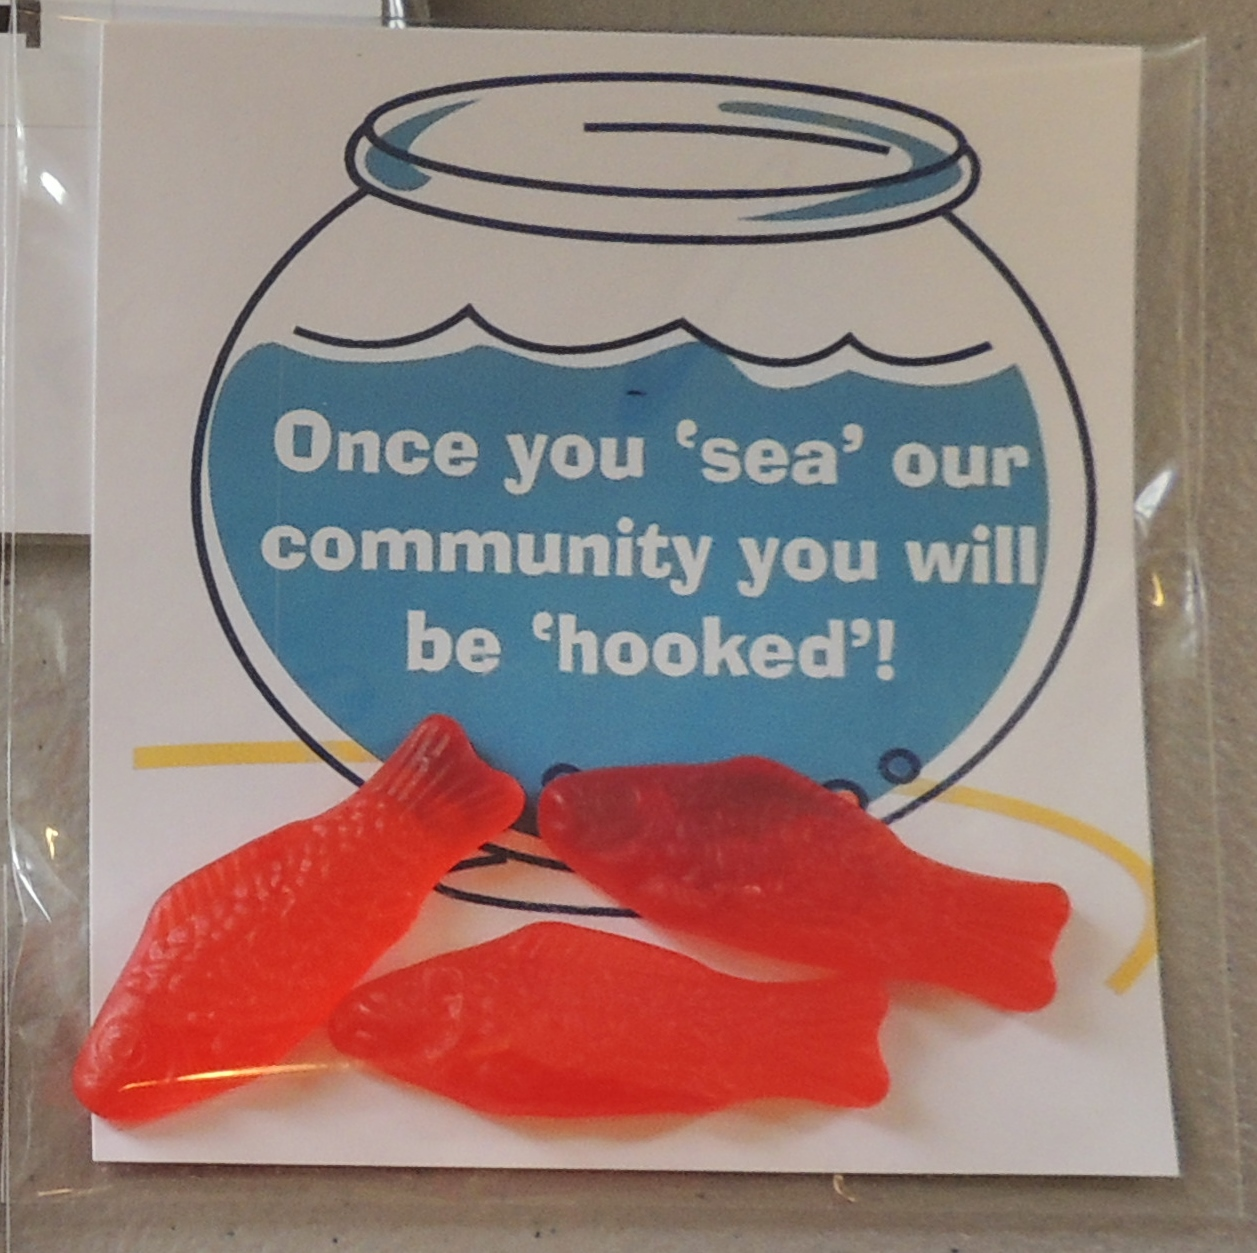 Our Community Apartments: Once You Sea Our Community You Will Be Hooked